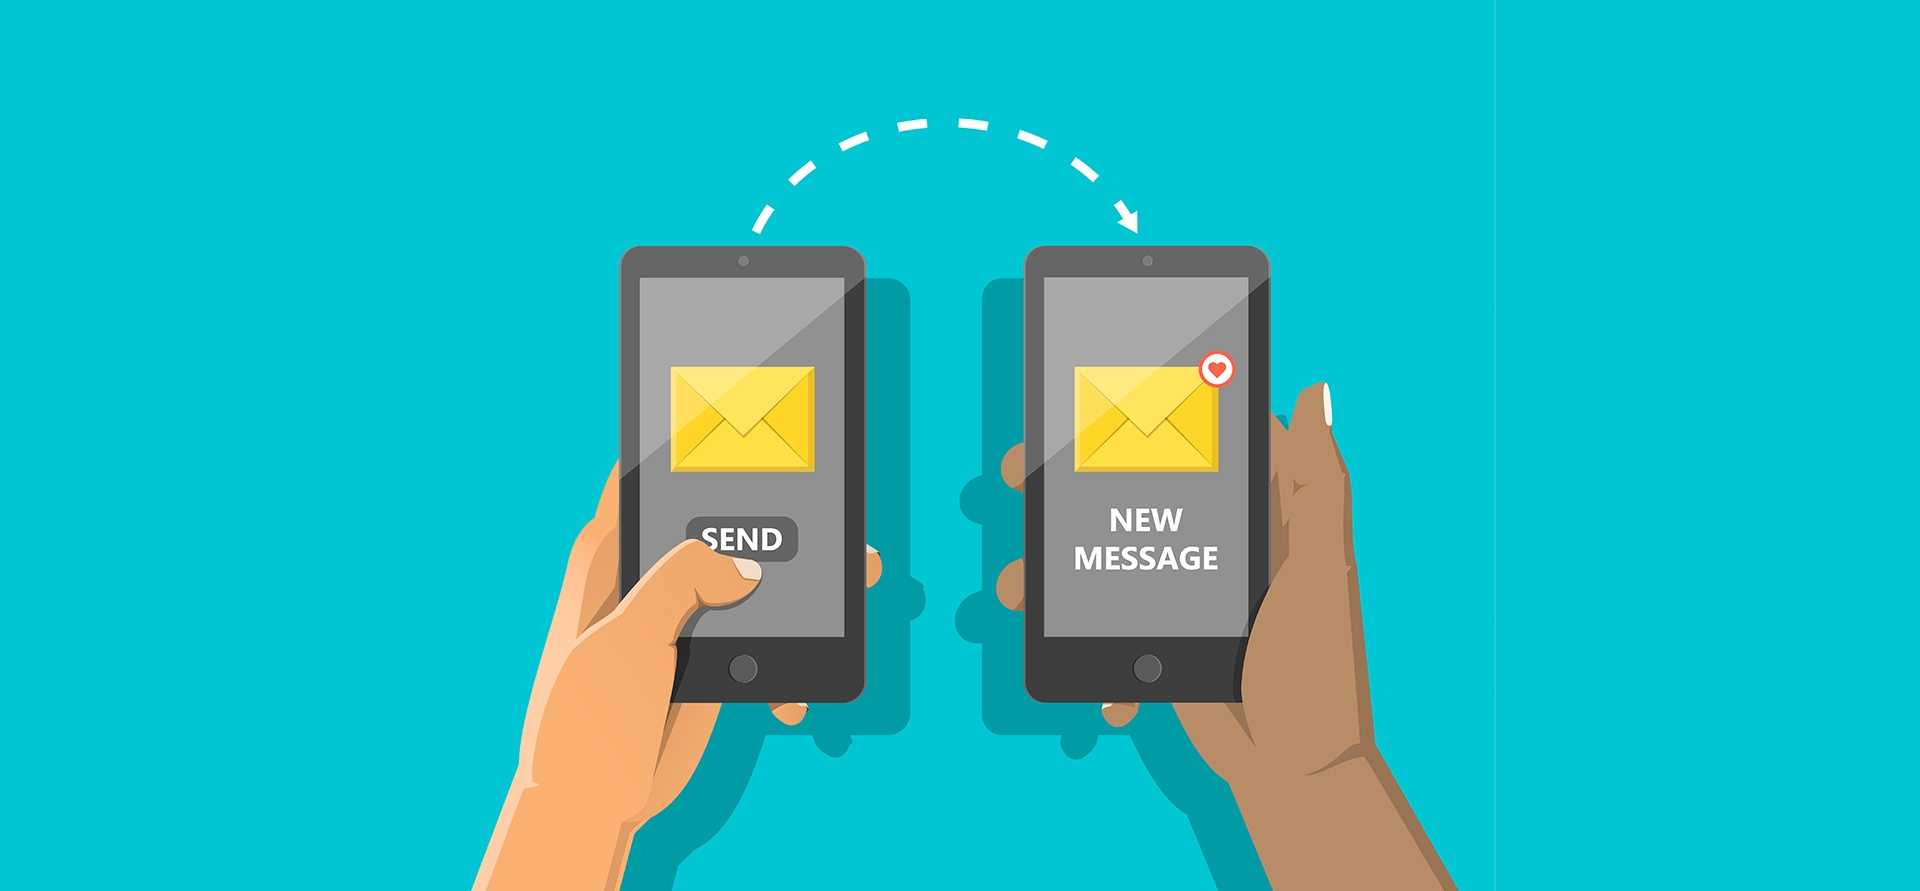 B2B SMS Marketing: Easy & Effective Tips for HubSpot Users